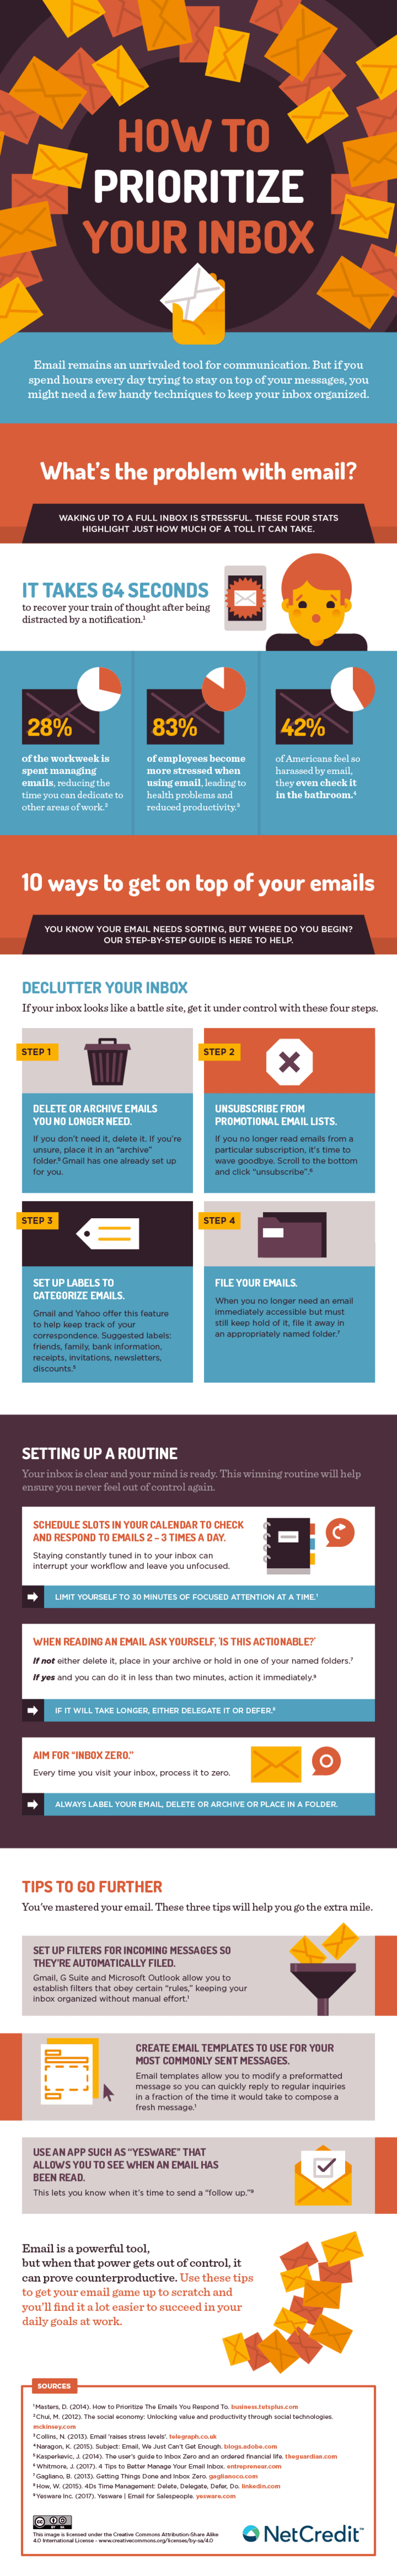 An infographic by online personal loan provier NetCredit, detailing how to improve email productivity